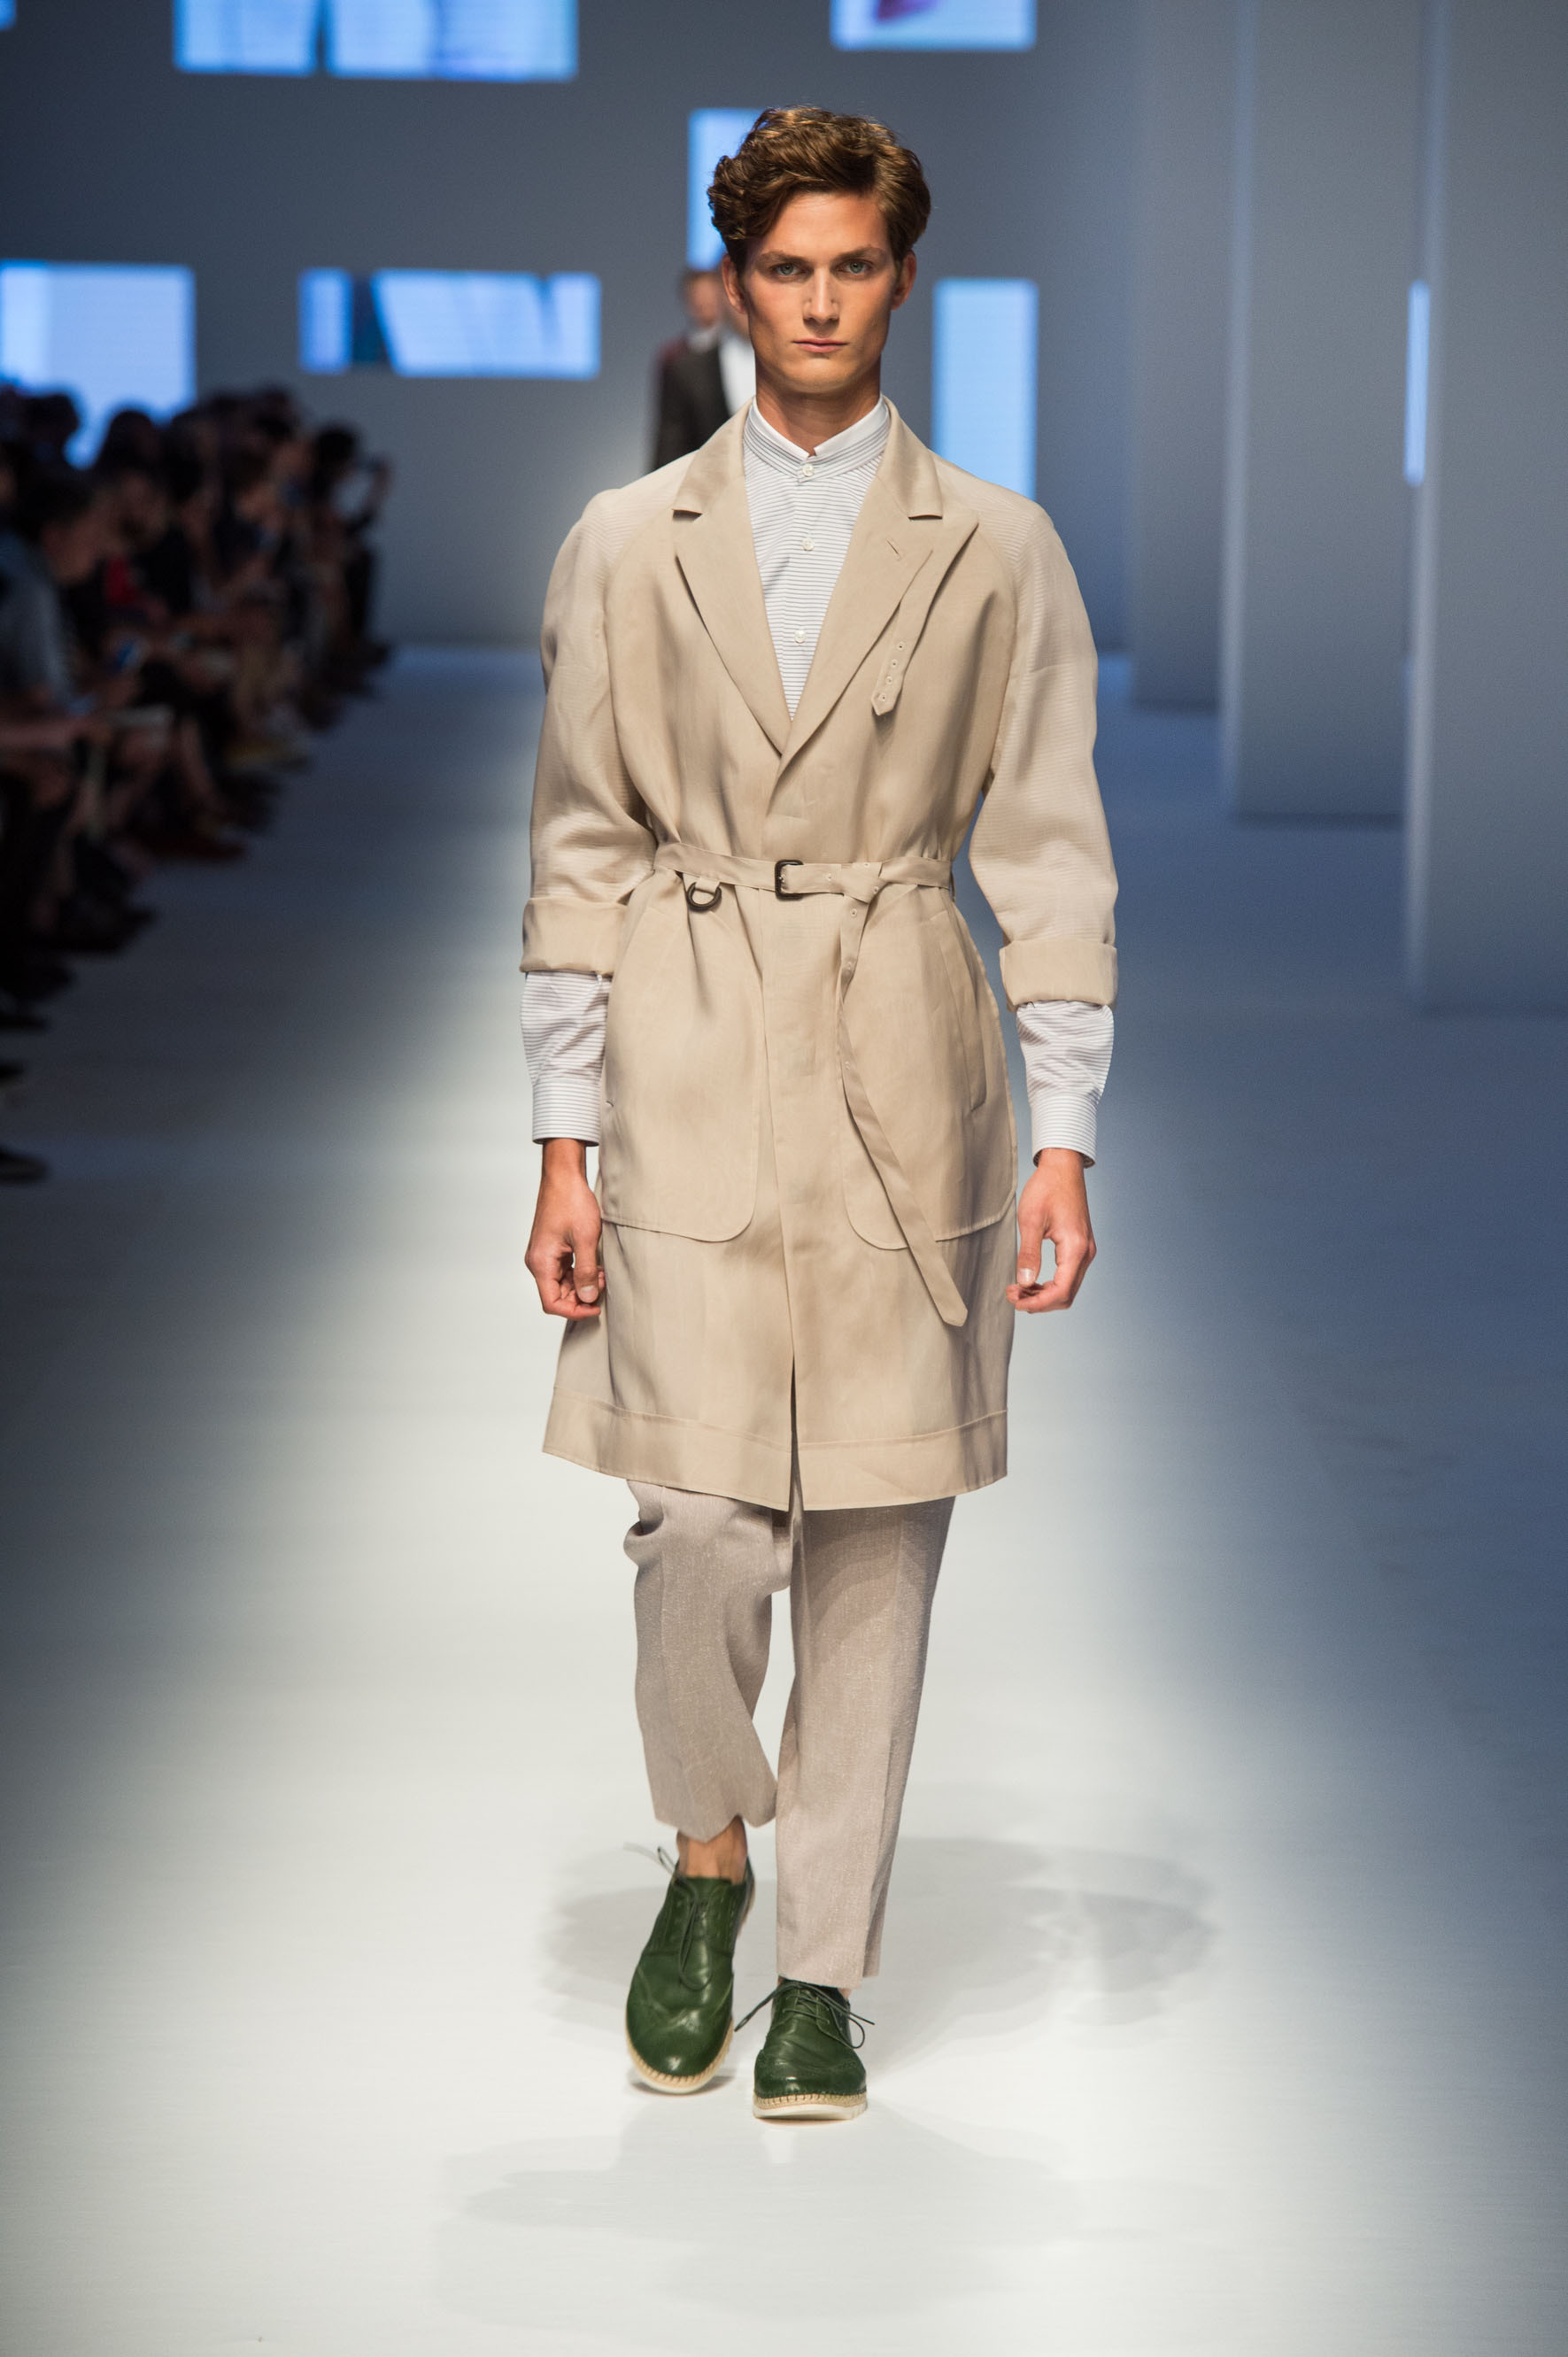 Silk organza trench with oversized pockets, reverse-pleated pants with terry effect, calfskin lace-up espadrilles